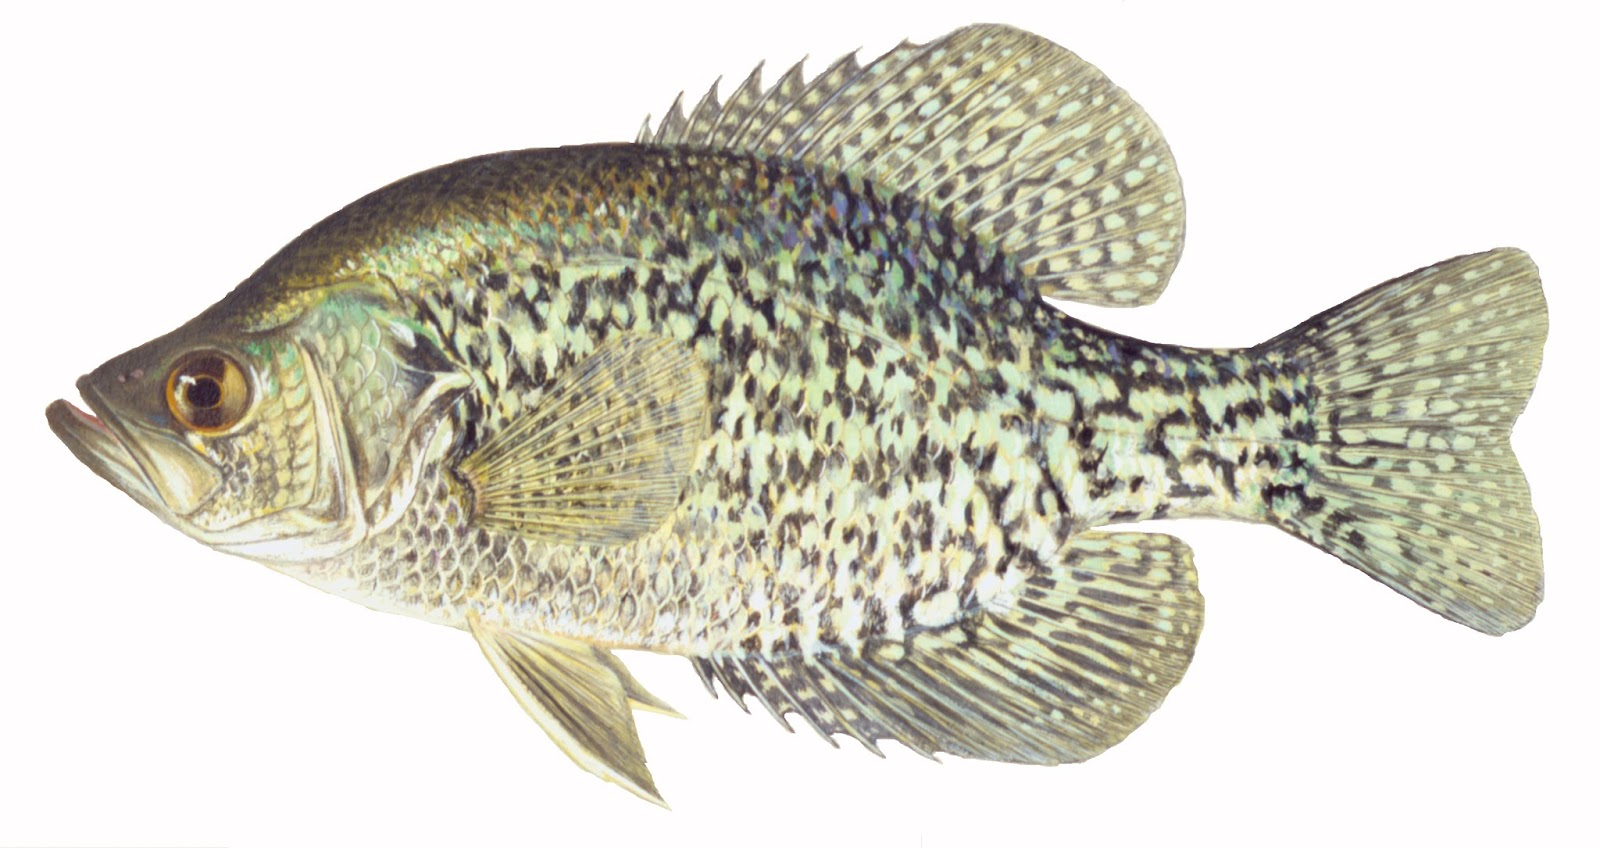 Take it outside fish iowa test your fish id skills for What is a crappie fish